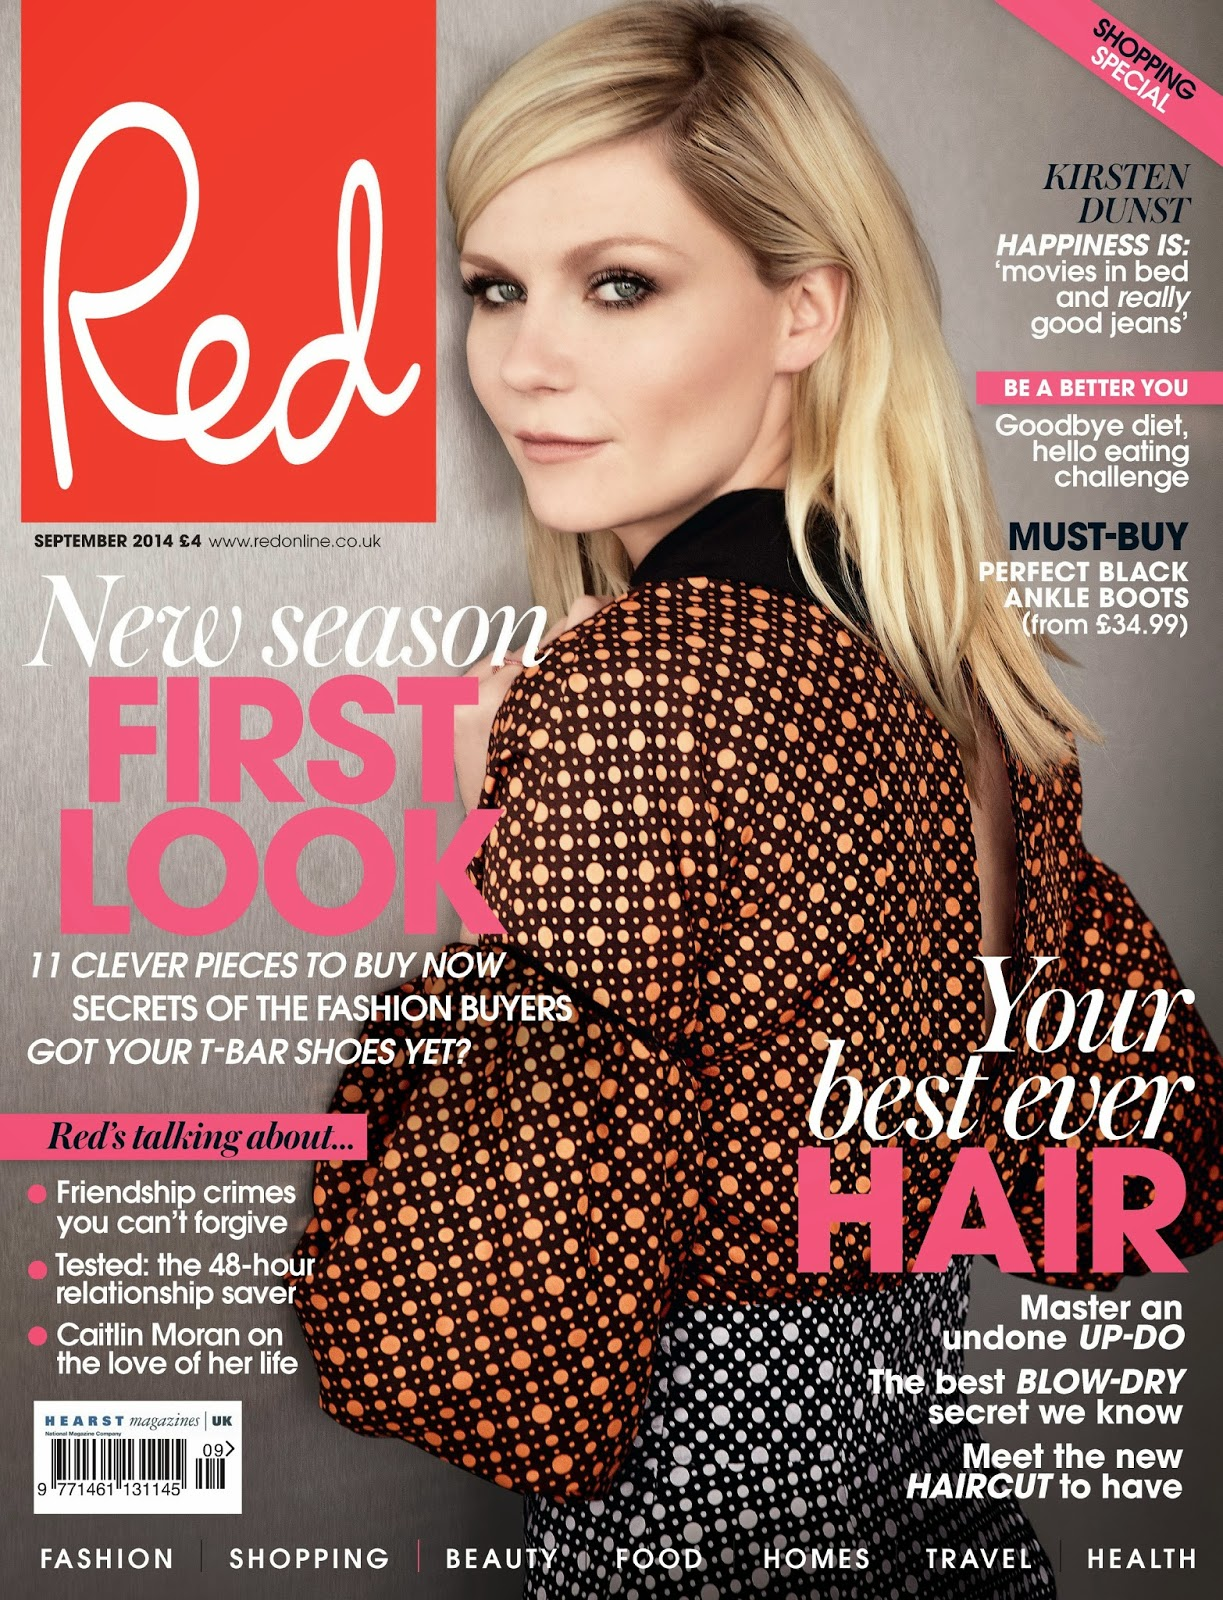 Kirsten Dunst - Red Magazine, UK, September 2014